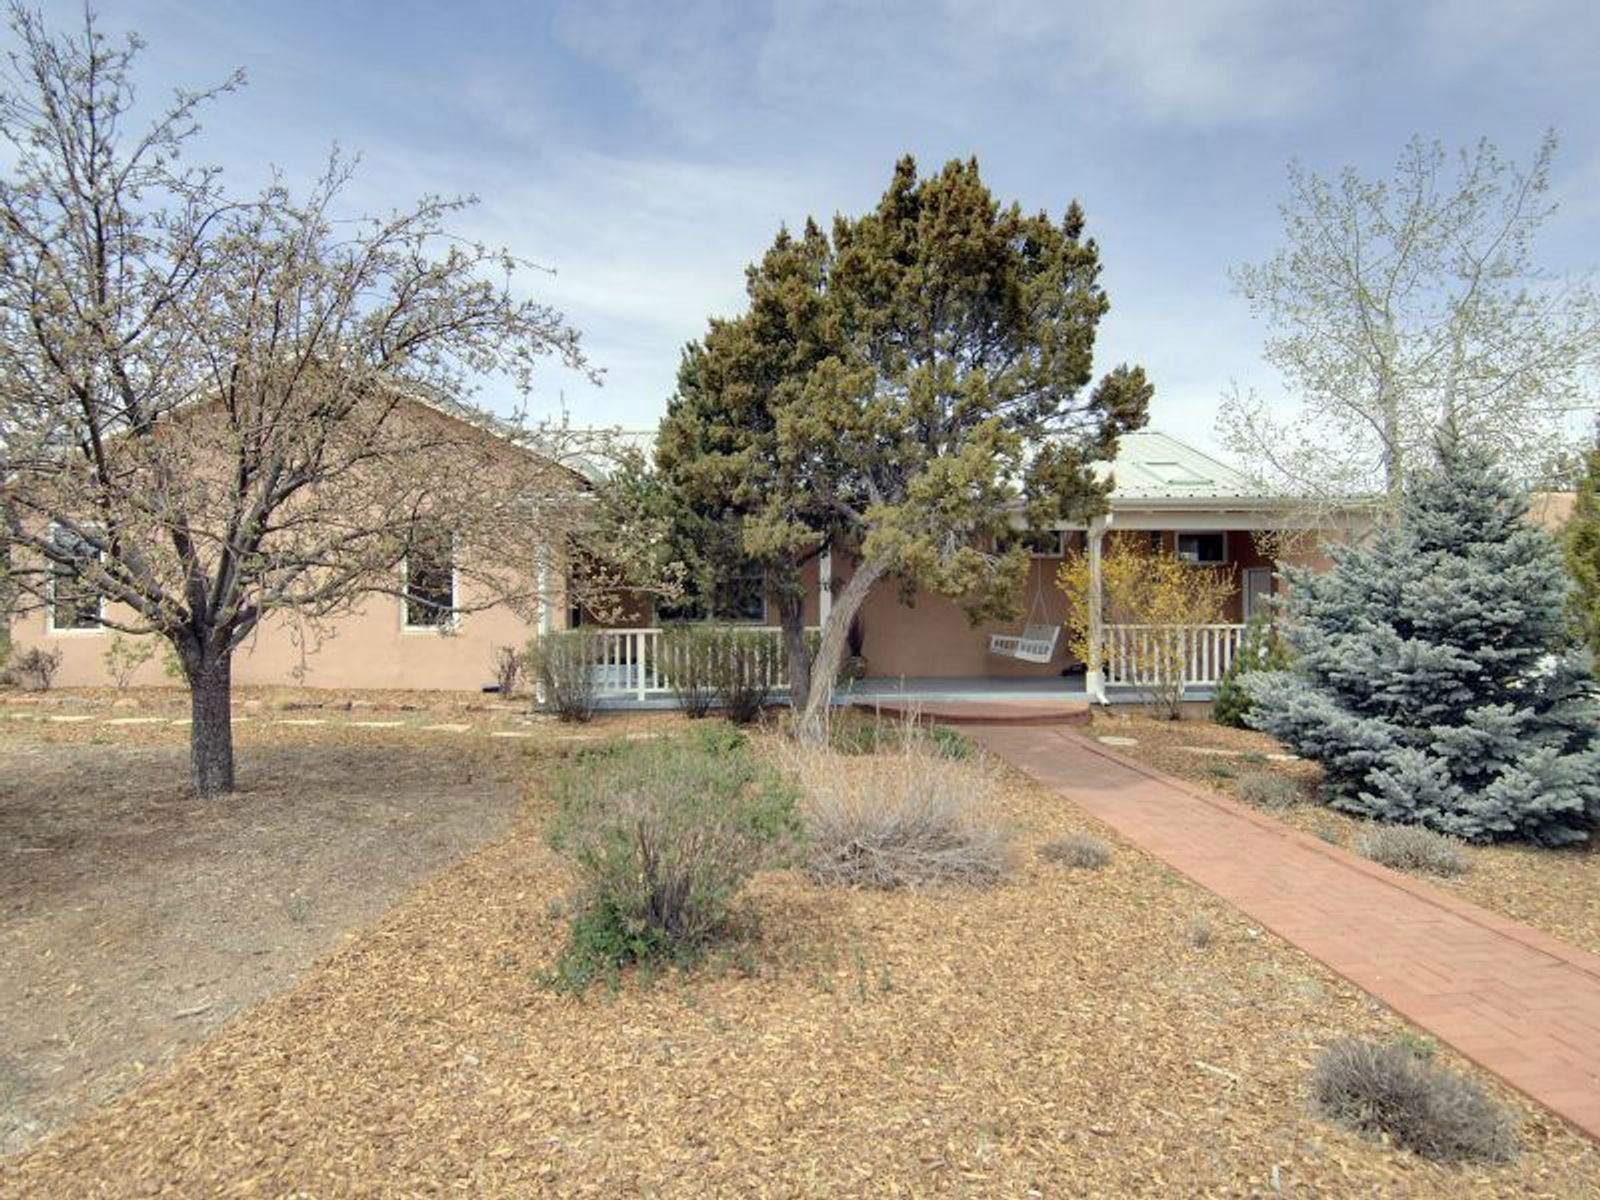 14 Blue Jay , Santa Fe NM Single Family Home - Santa Fe Real Estate